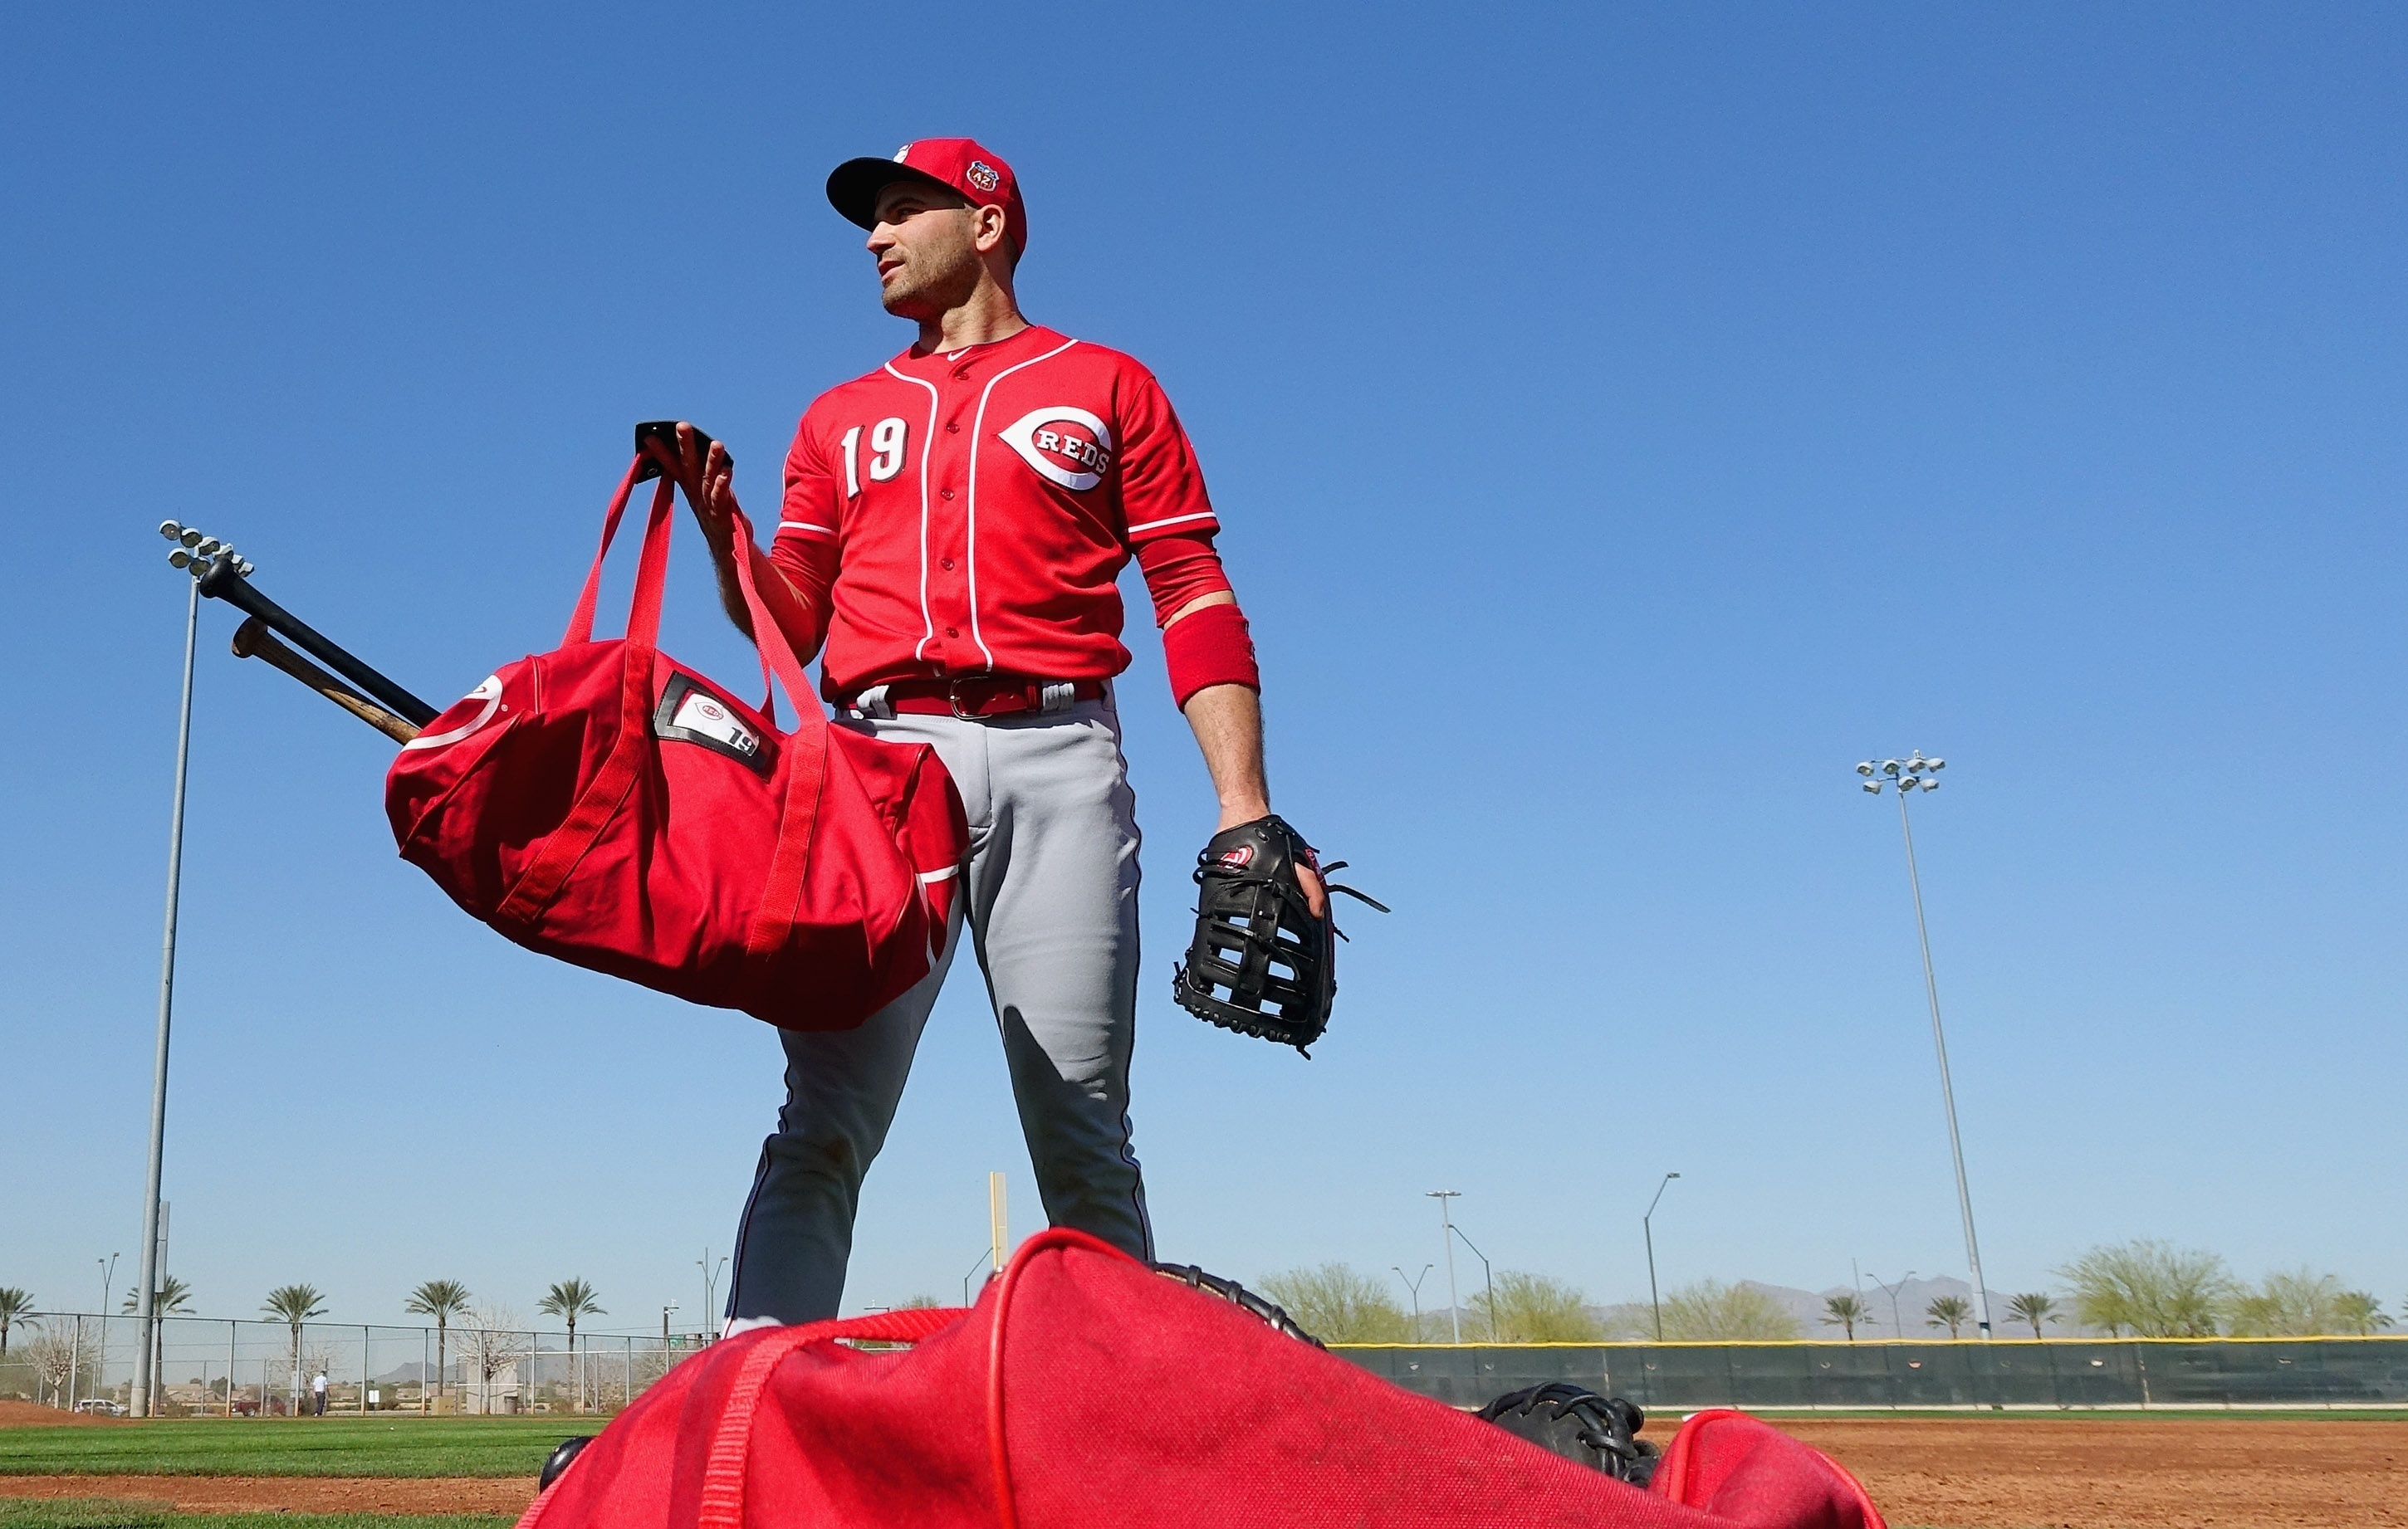 Cincinnati Reds' Joey Votto picks up his equipment bag as he gets ready to move to another practice field during a spring training baseball workout Thursday, Feb. 25, 2016, in Goodyear, Ariz. (AP Photo/Ross D. Franklin)